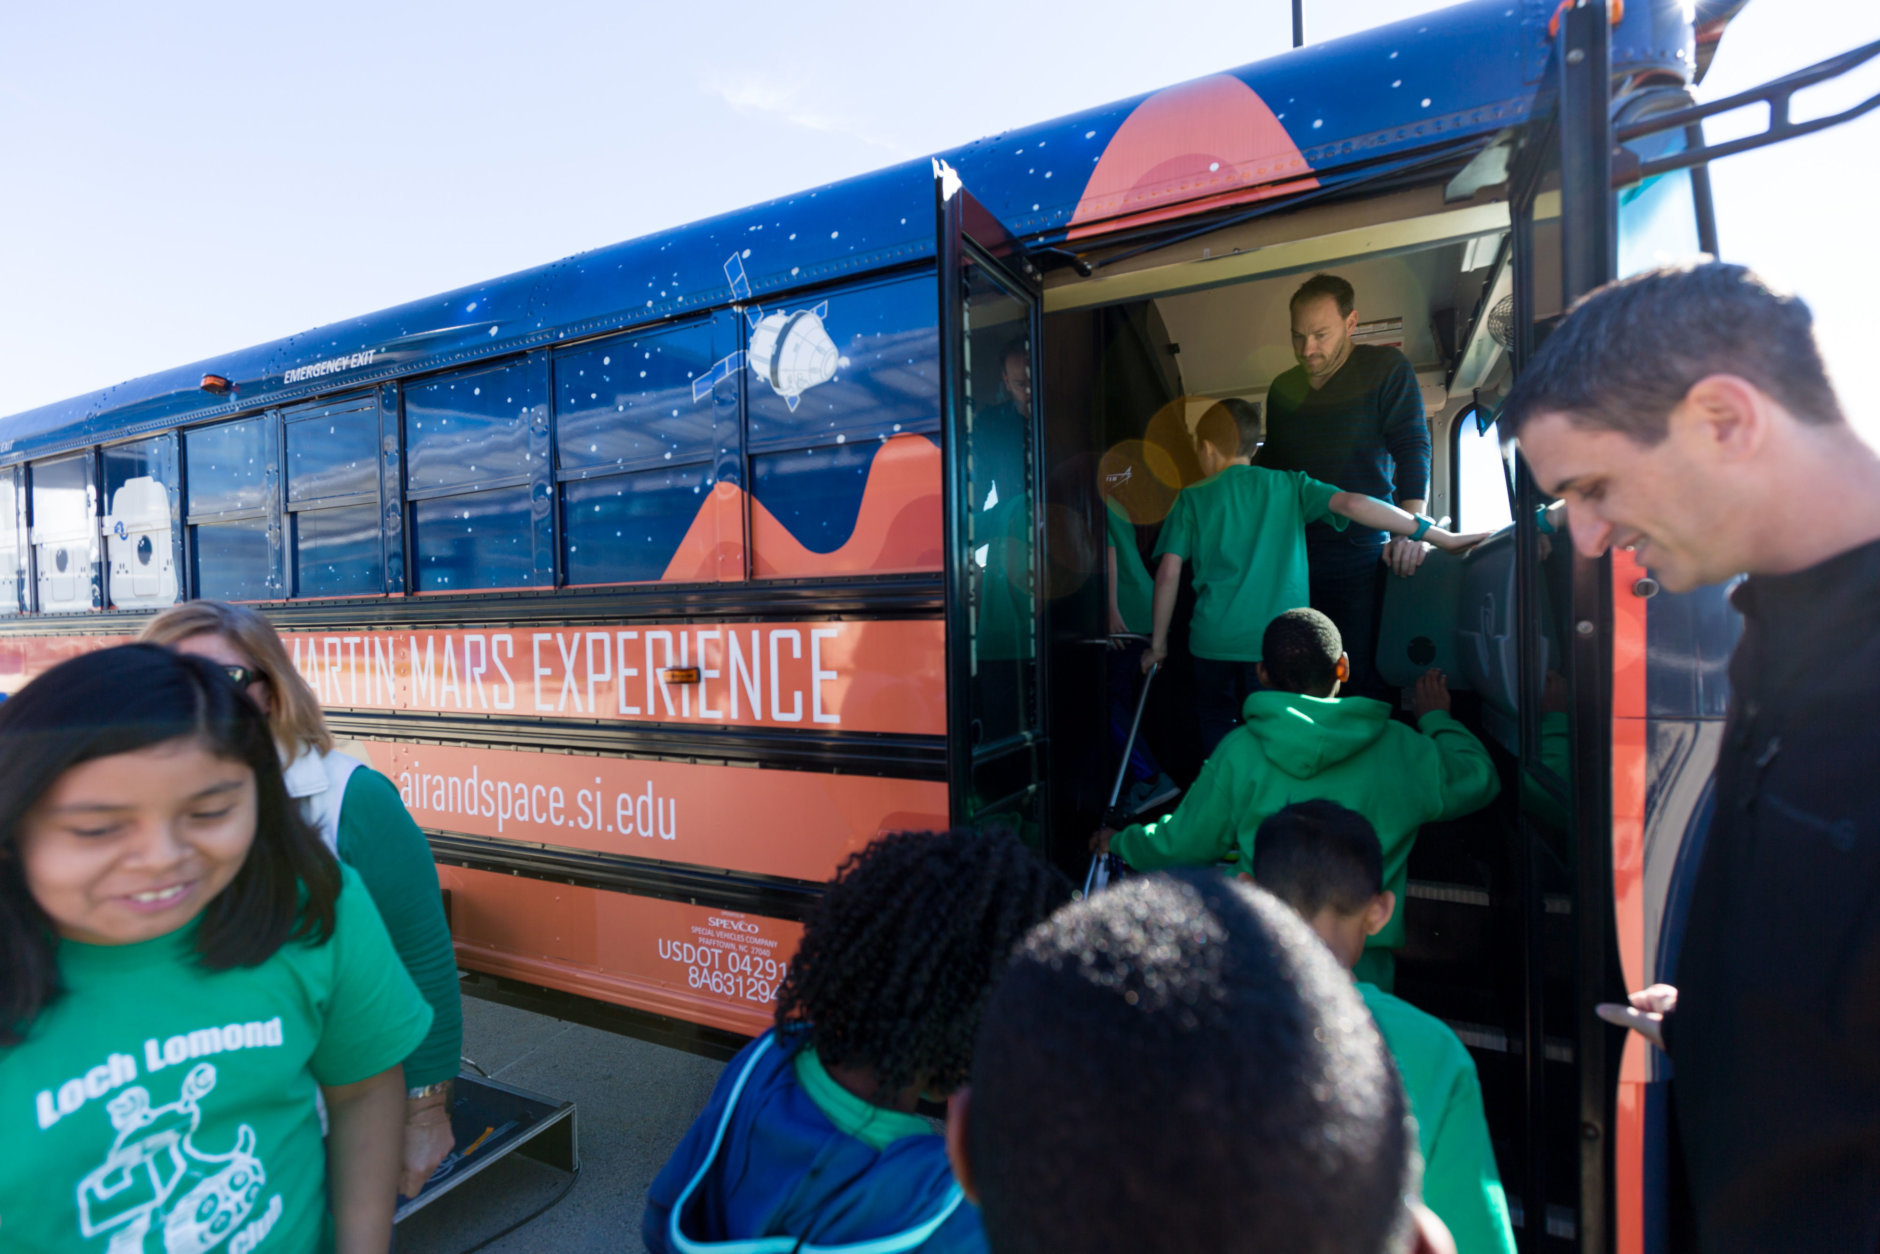 Students from the Manassas, Virginia's Loch Lomond Elementary School robotics team were the first ones to board the Lockheed Martin Mars Experience Bus after a morning ceremony at the Steven F. Udvar-Hazy Center in Chantilly, Virginia, Oct. 19, 2018. Lockheed Martin donated the bus, fitted with high-definition monitors on the windows, which provide visitors an opportunity to experience the Martian surface. (Air and Space Museum/Daniel Soñé)